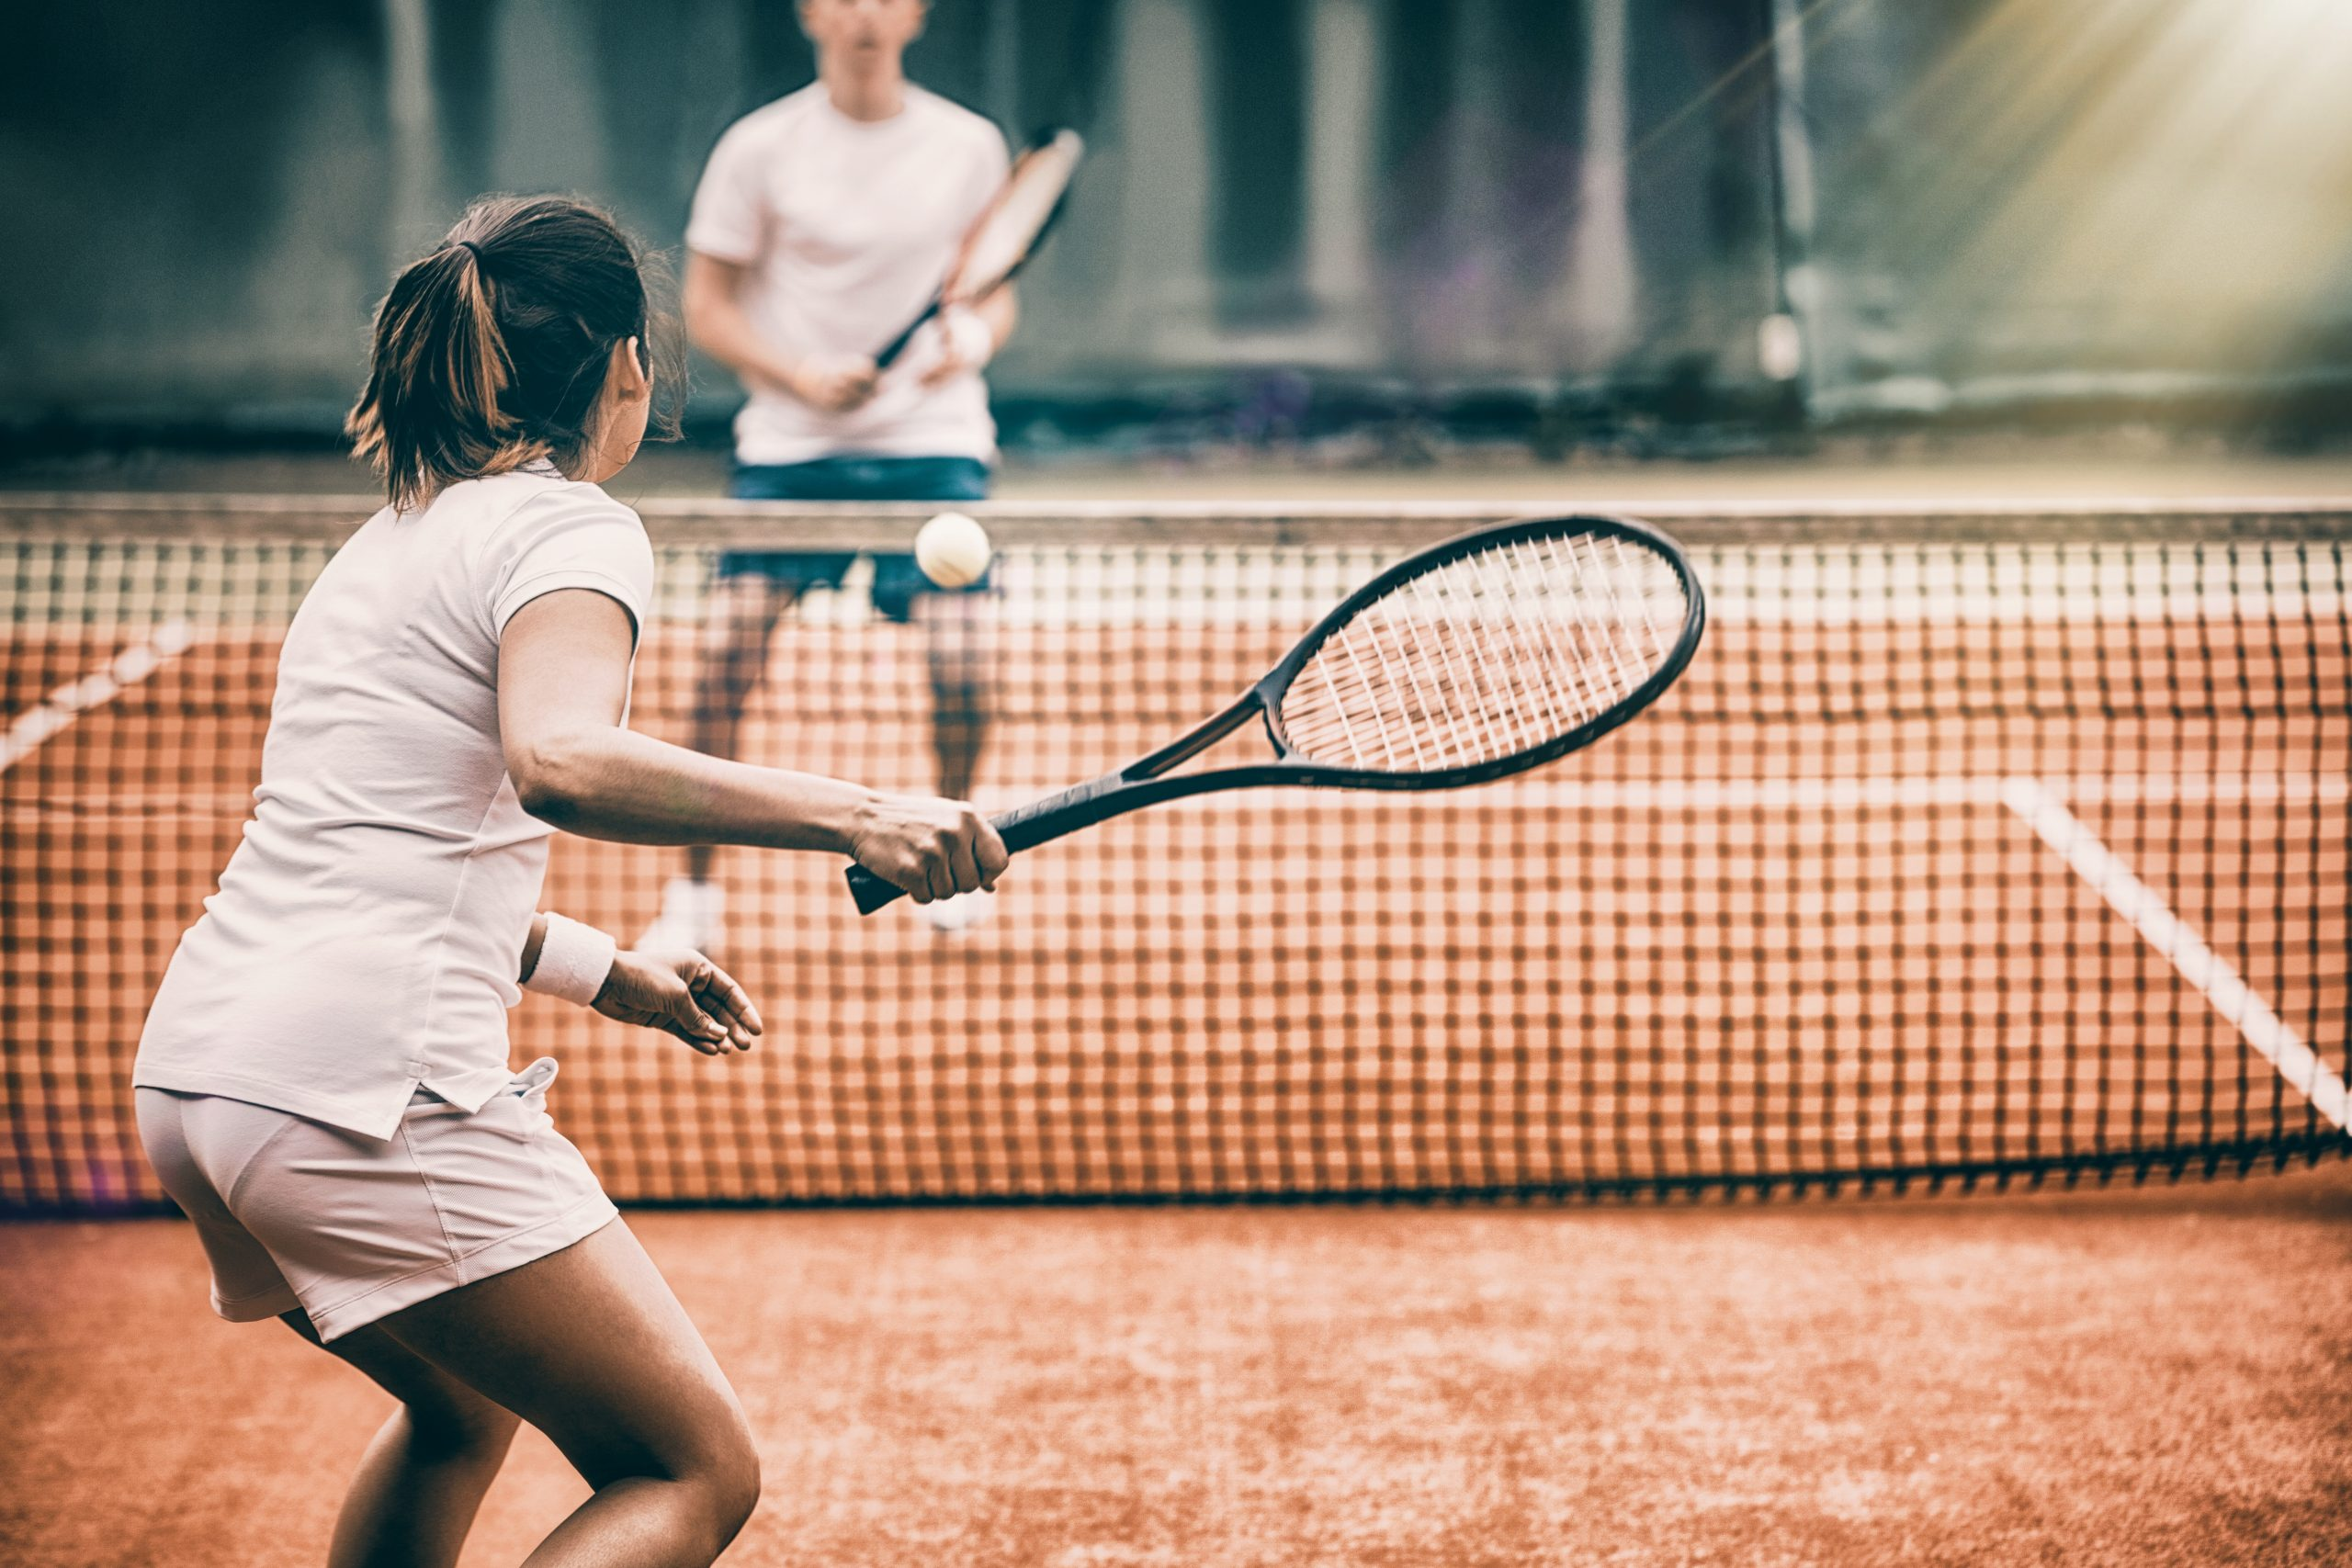 Tennis players playing a match on the court